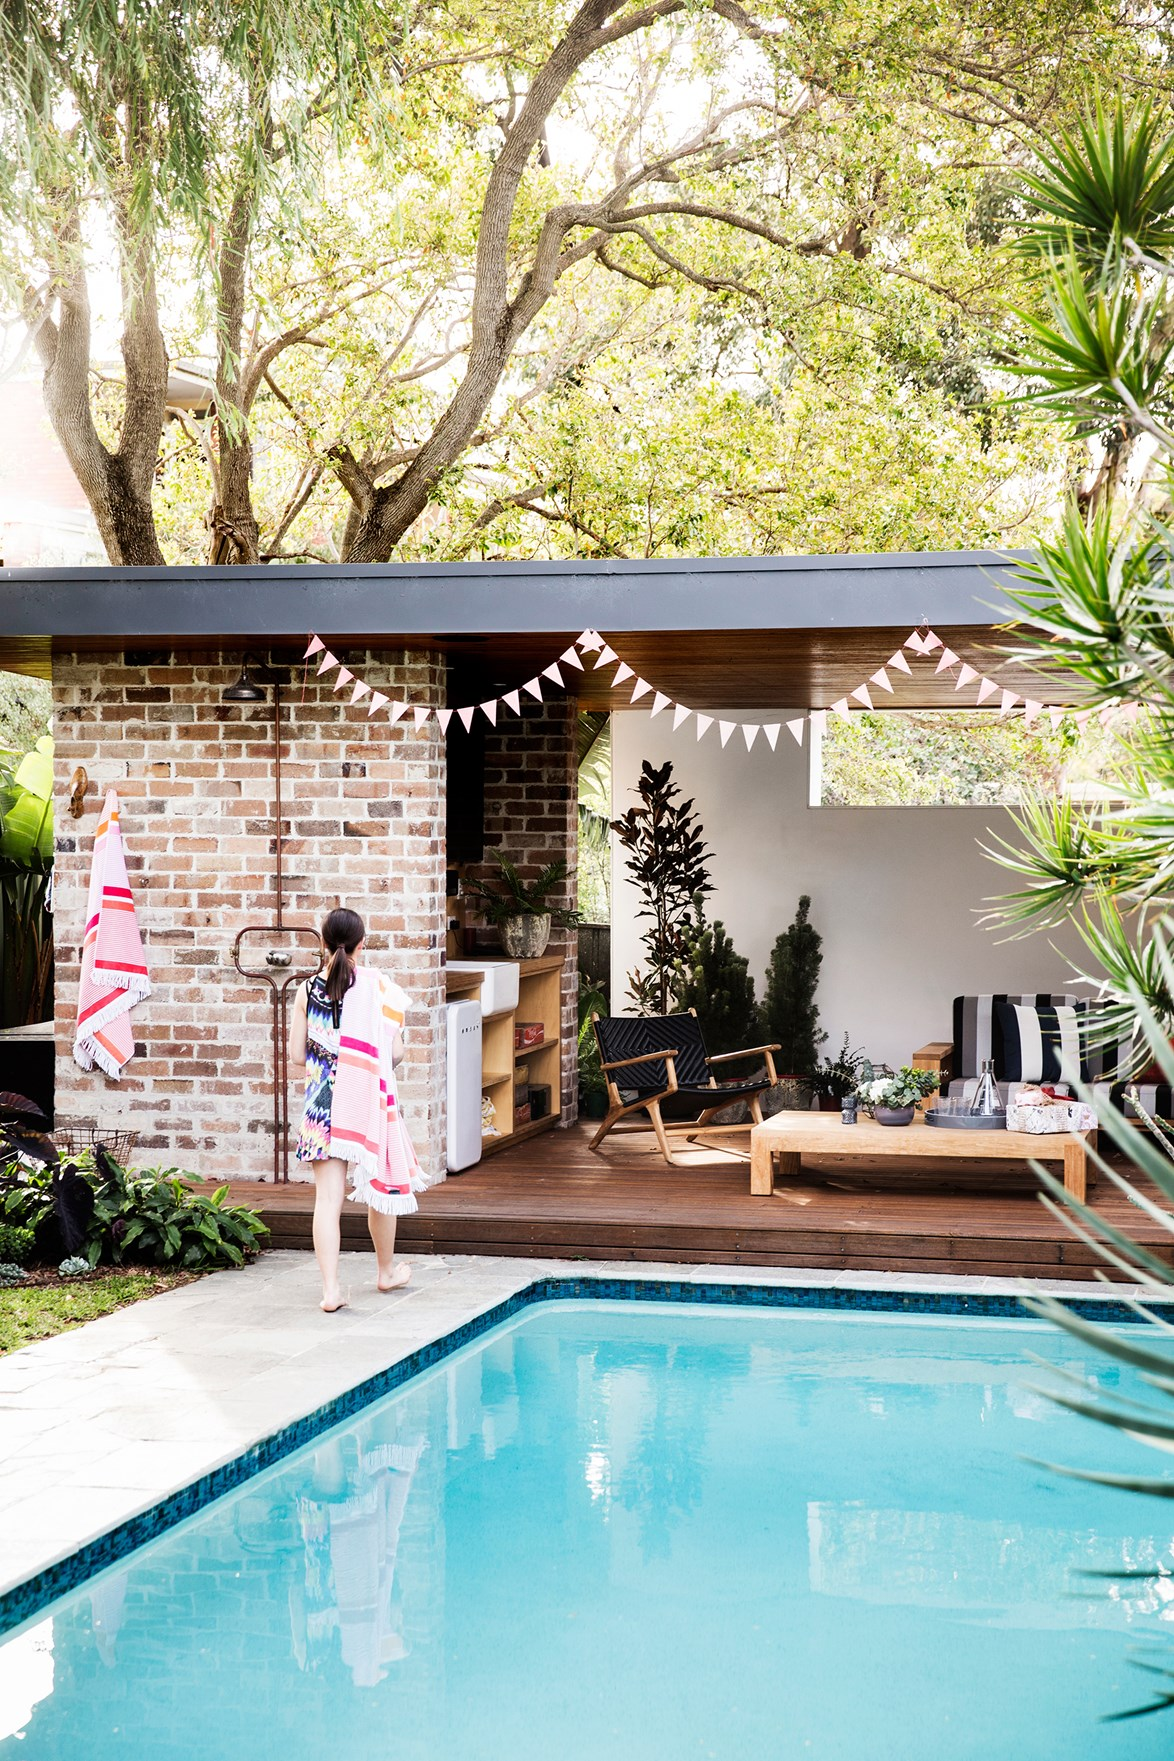 "**Create an outdoor relaxation room**<br> An [outdoor room](https://www.homestolove.com.au/inviting-outdoor-room-ideas-19144|target=""_blank"") set away from the house can give occupants their own space when they need it, and a simple pergola or poolside cabana helps define the space. From the [outdoor shower](https://www.homestolove.com.au/outdoor-shower-ideas-19532